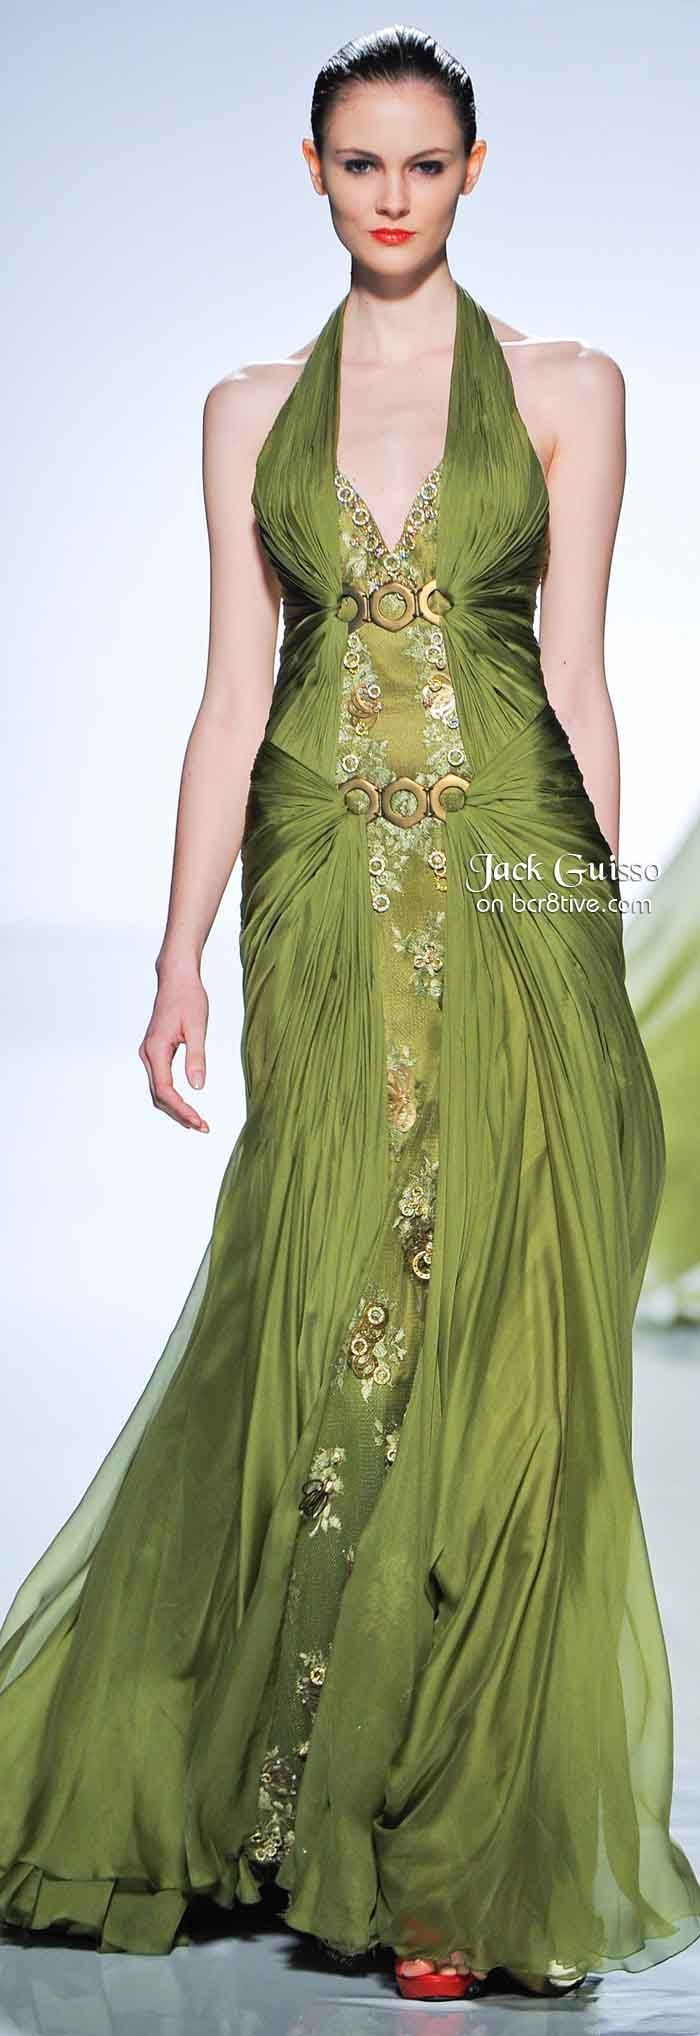 Jack Guisso Spring 2011 Couture beautiful just beautiful